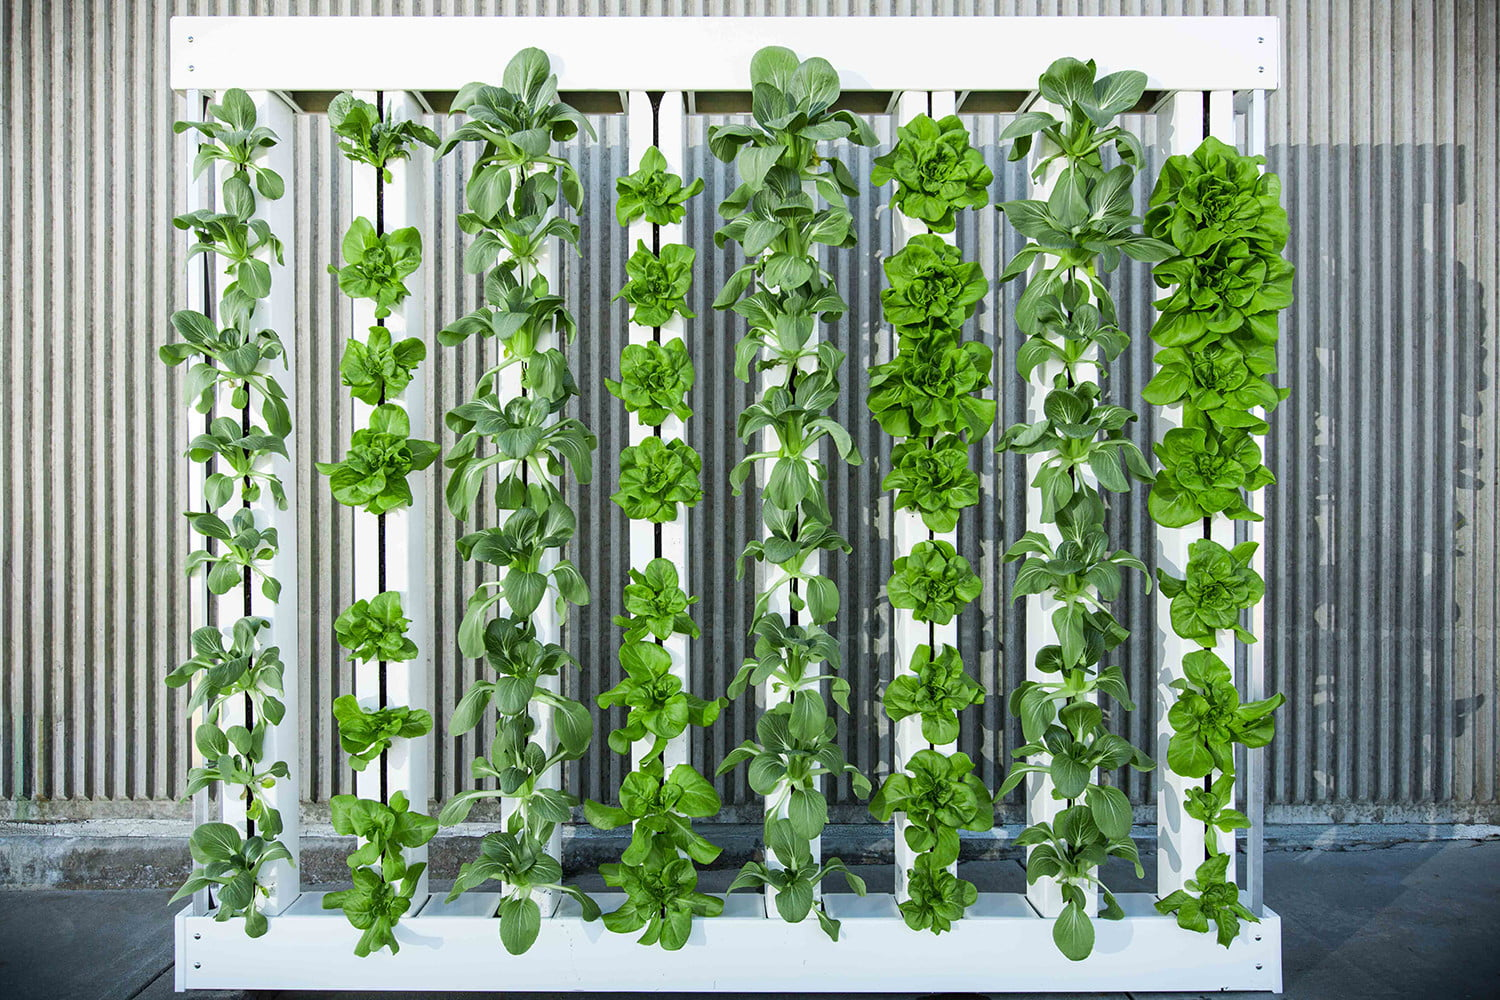 Will Vertical Farming Continue To Grow Or Has It Hit The